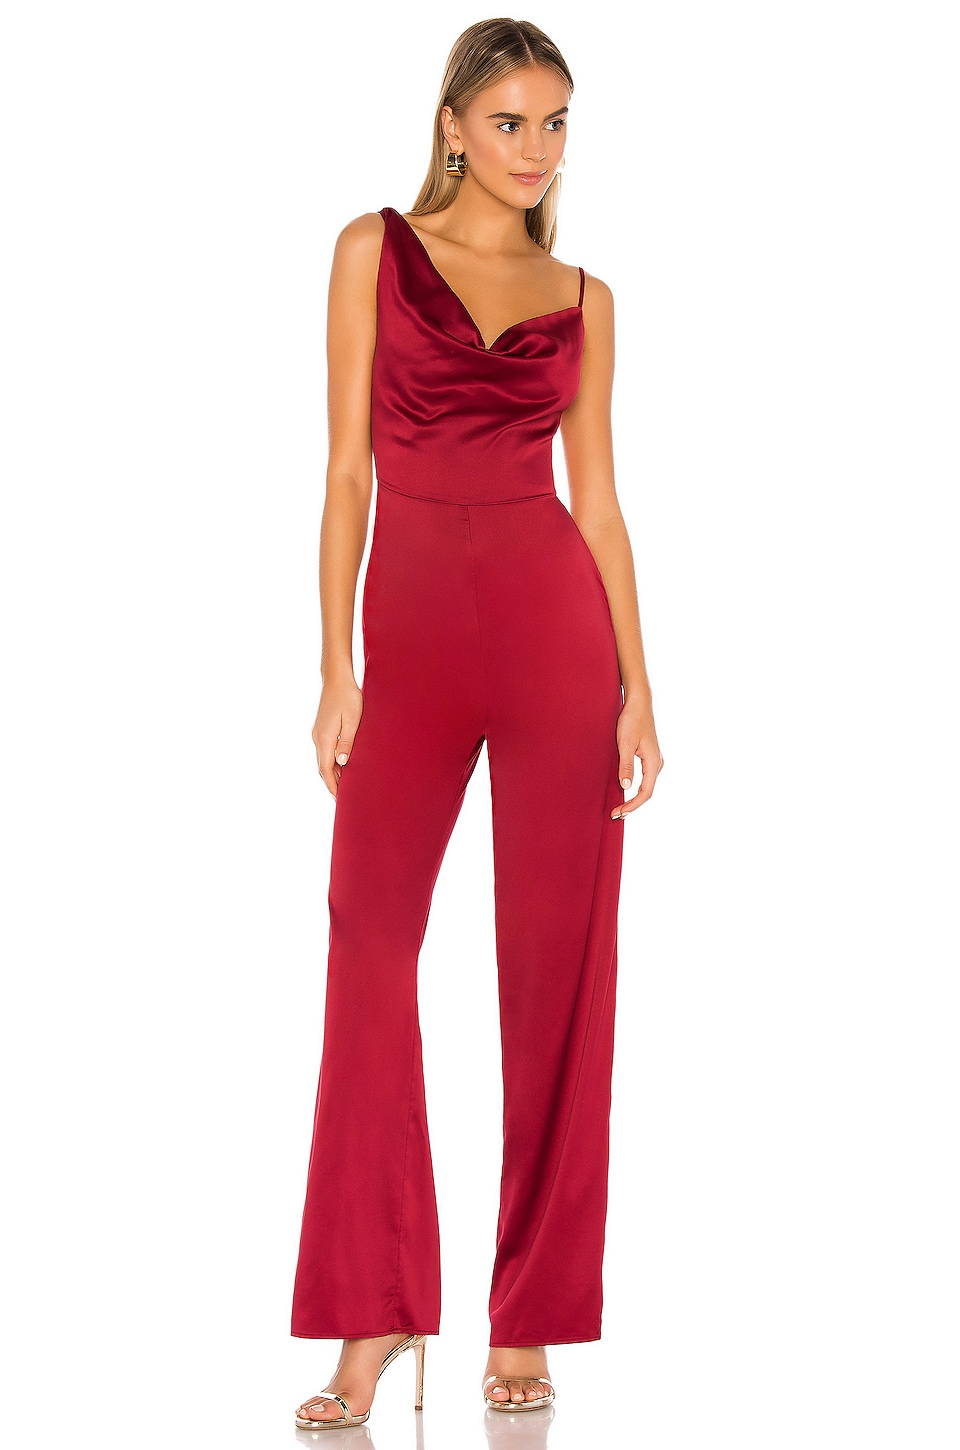 MAJORELLE Clark Jumpsuit in Cranberry Red